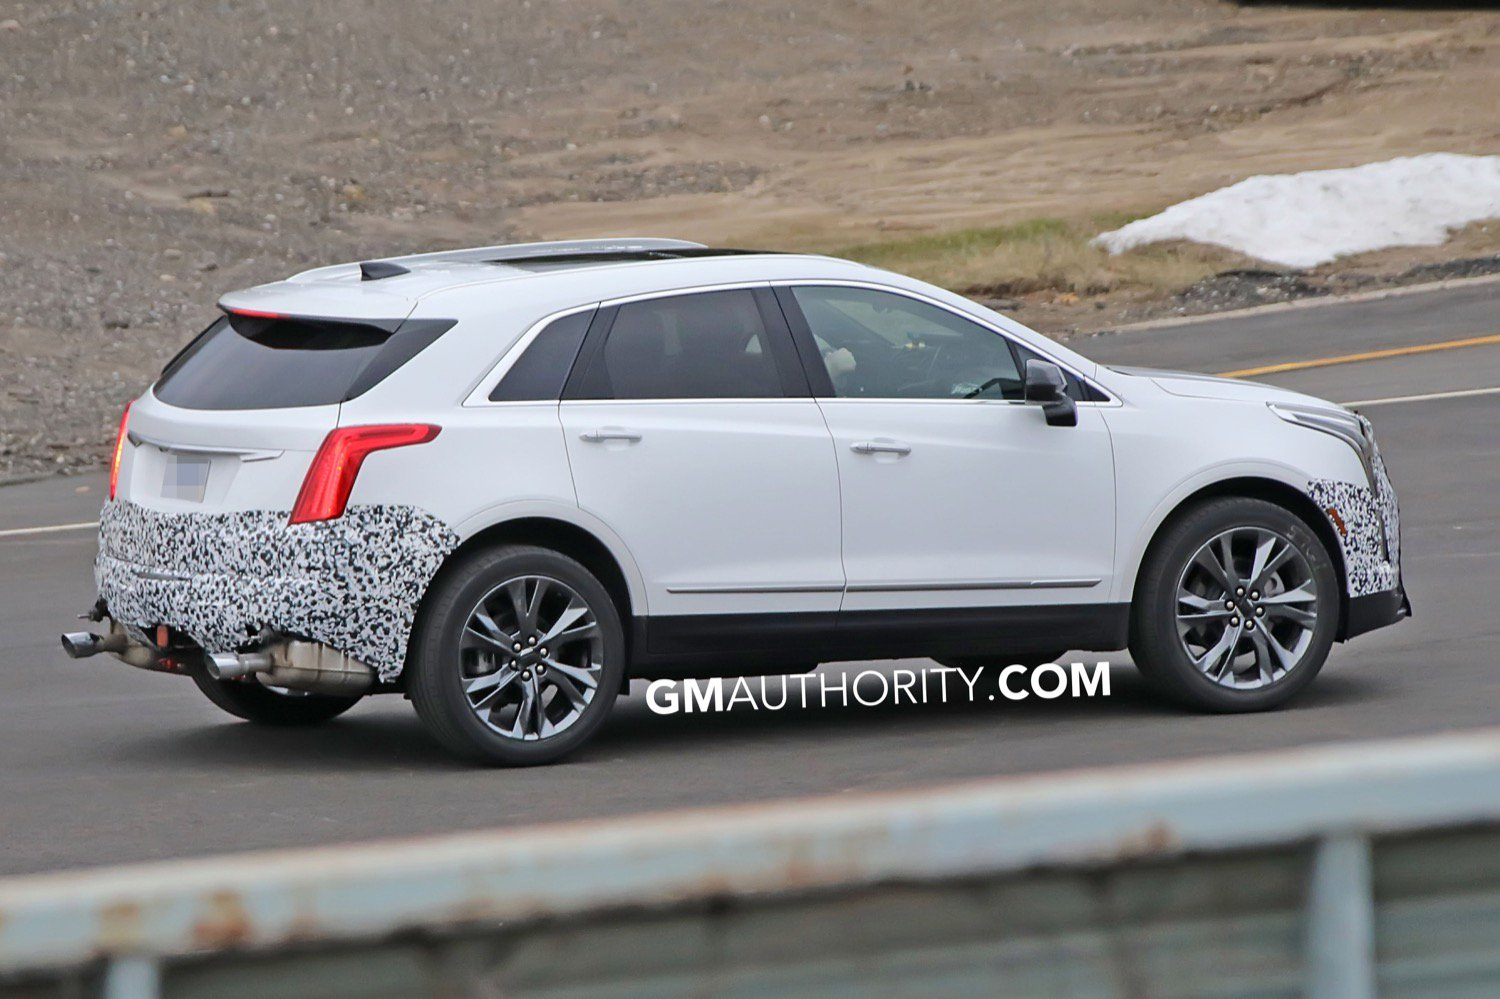 65 The 2020 Spy Shots Cadillac Xt5 Release Date